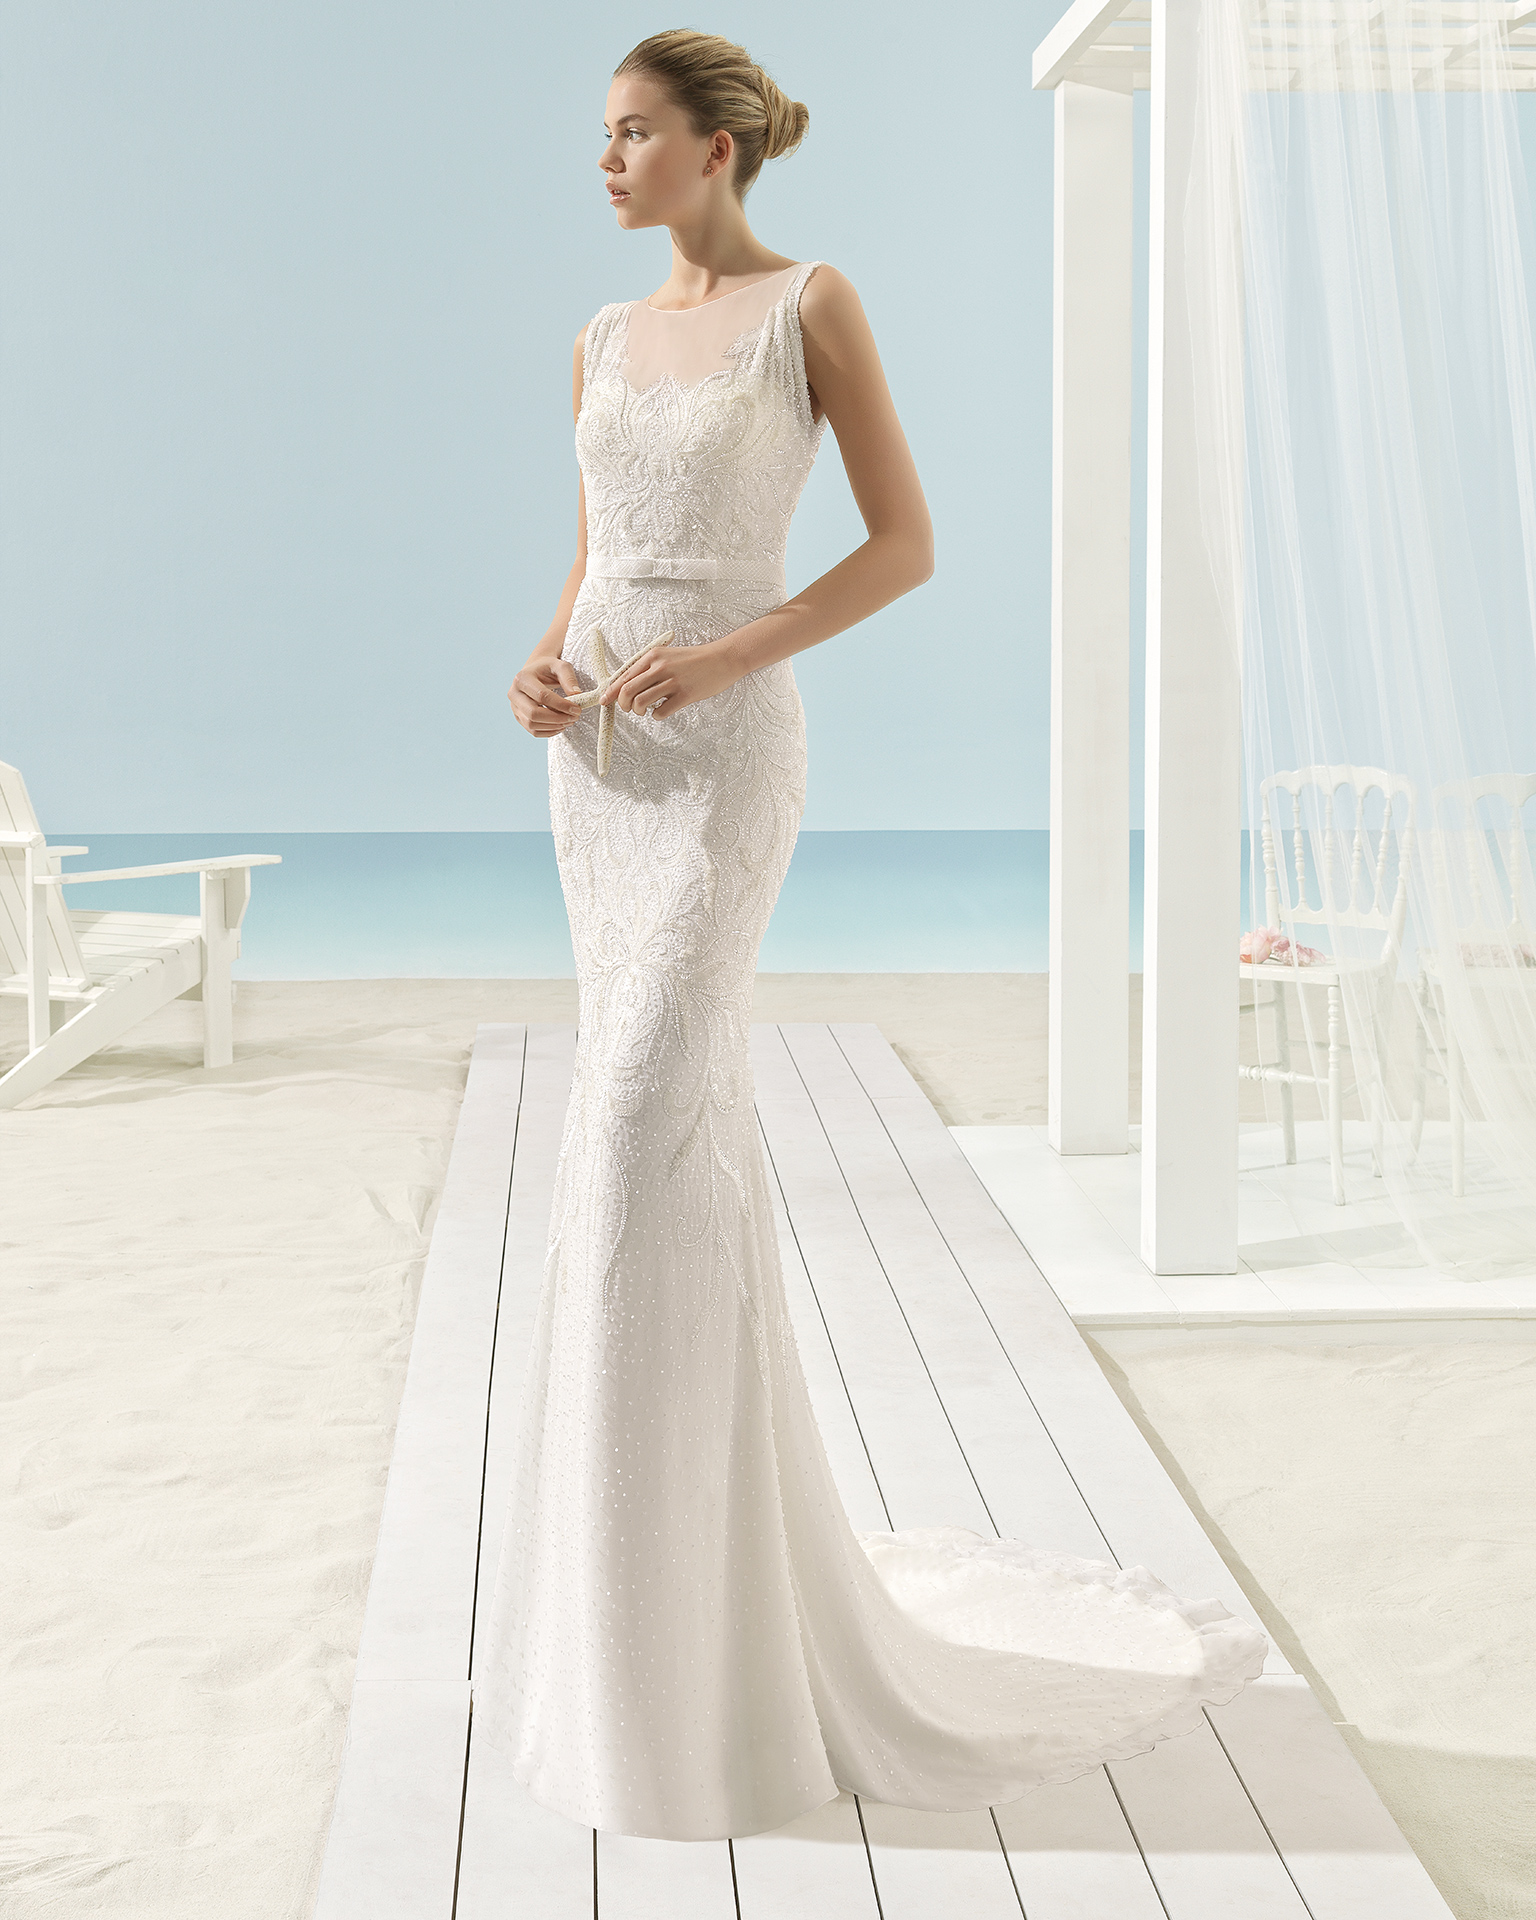 XANAT Abito da sposa Aire Barcelona Beach Wedding 2017